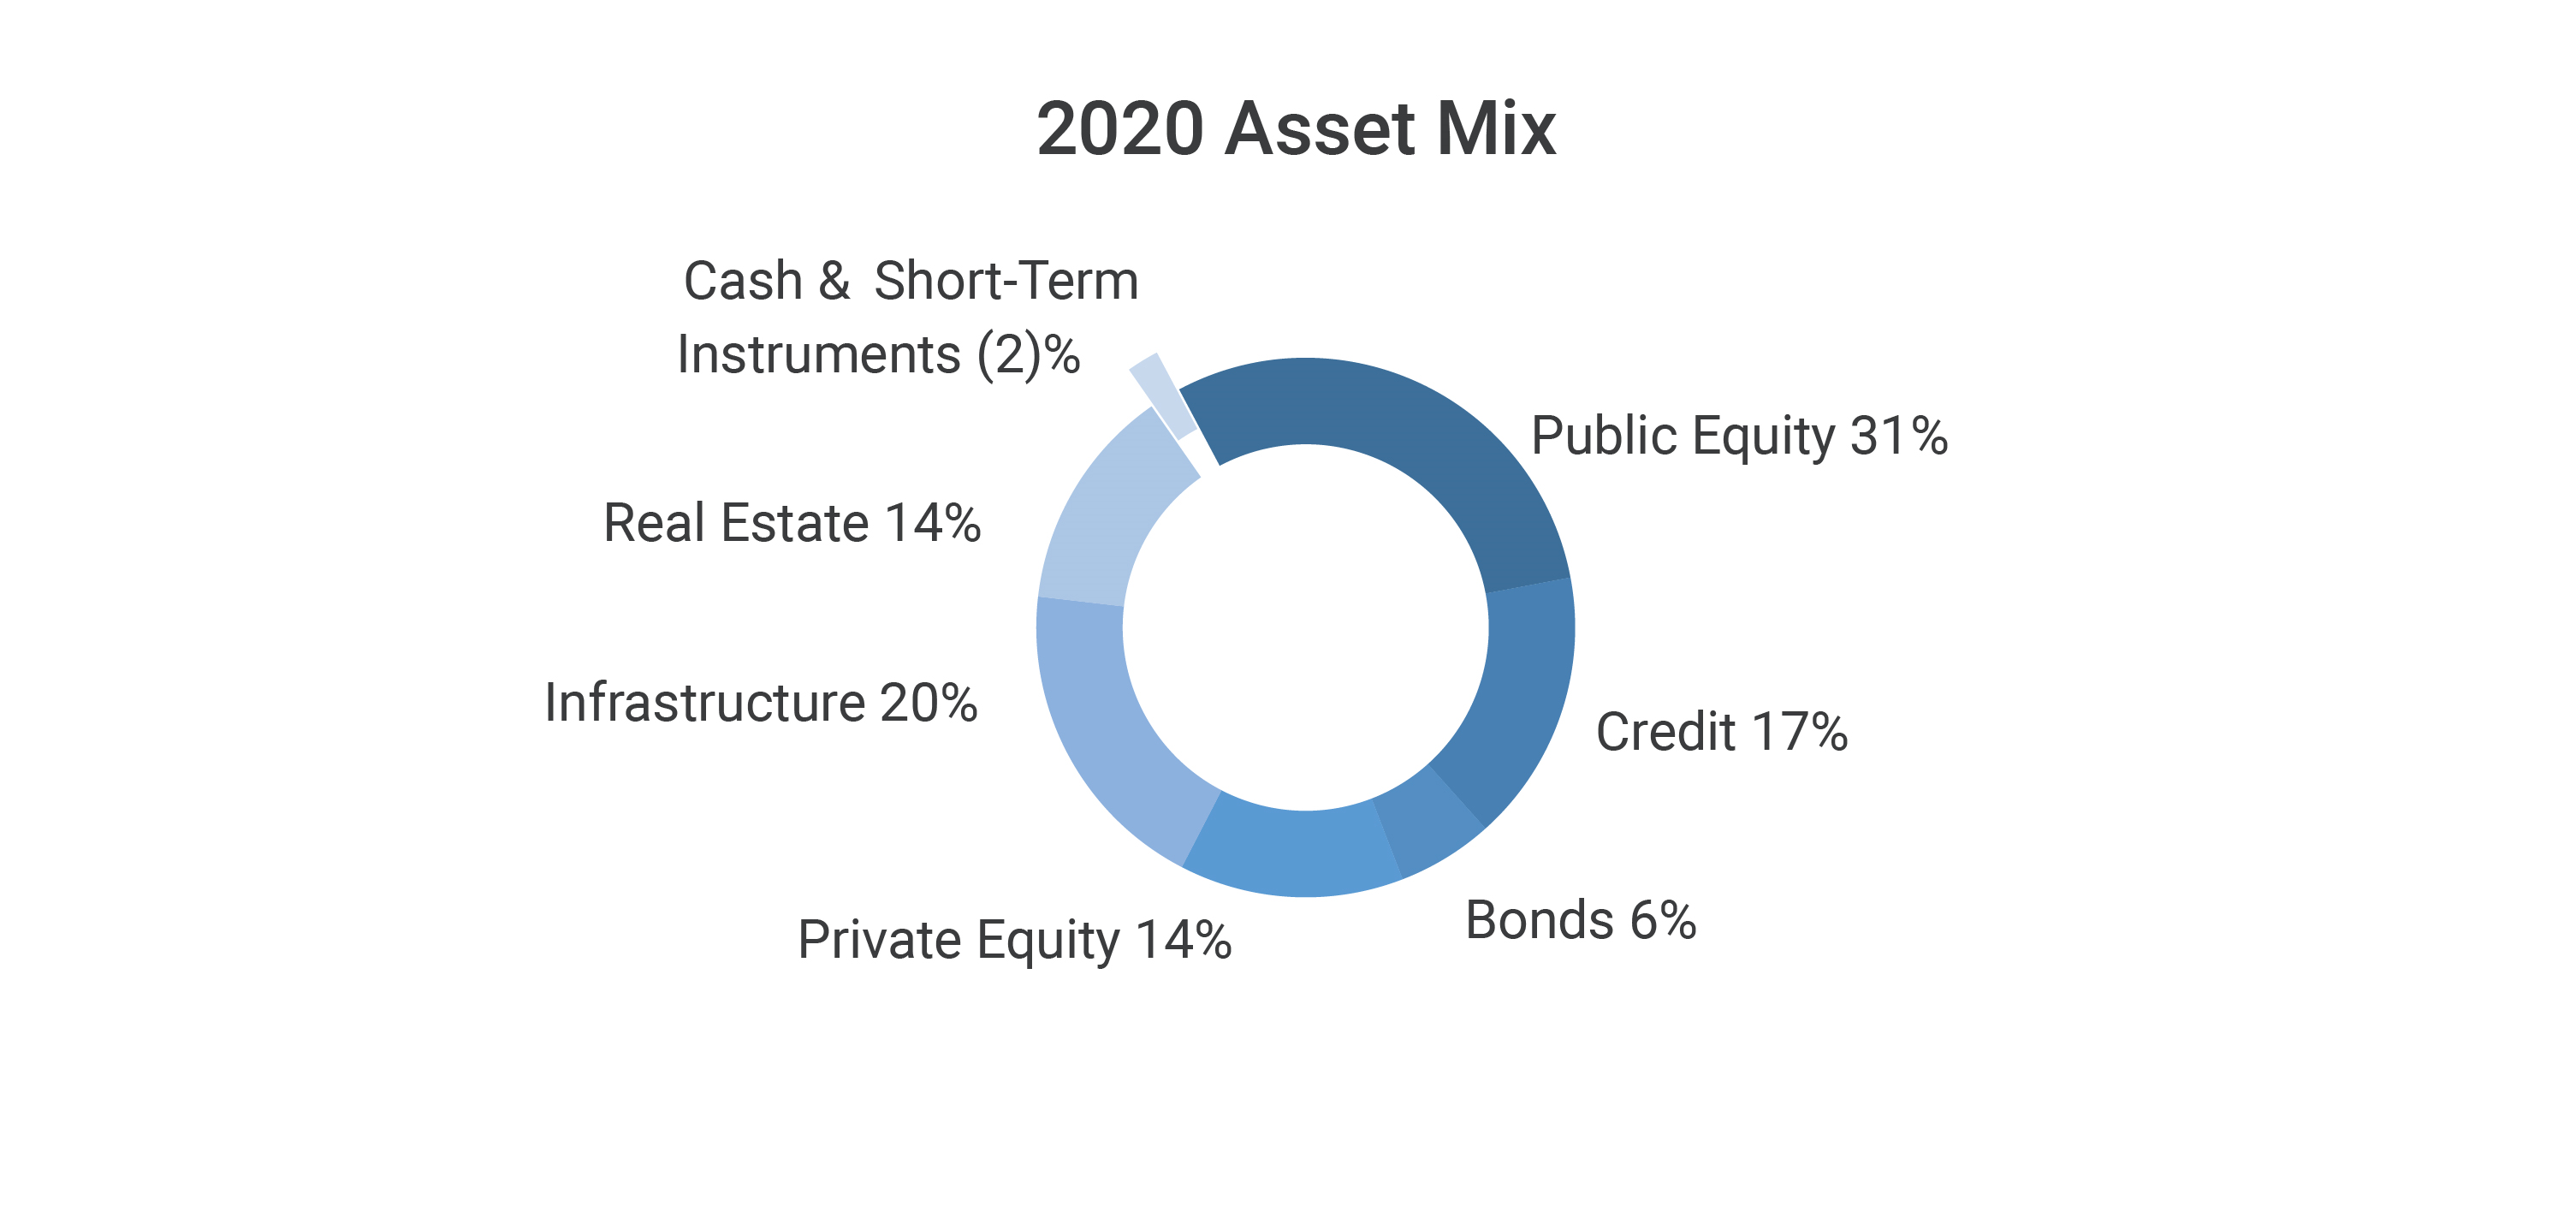 2020 Asset mix pie chart showing Cash & Short-term Instruments (2)%, Public Equity 31%, Credit 17%, Bonds 6%, Private Equity 14%, Infrastructure 20%, Real Estate 14%.